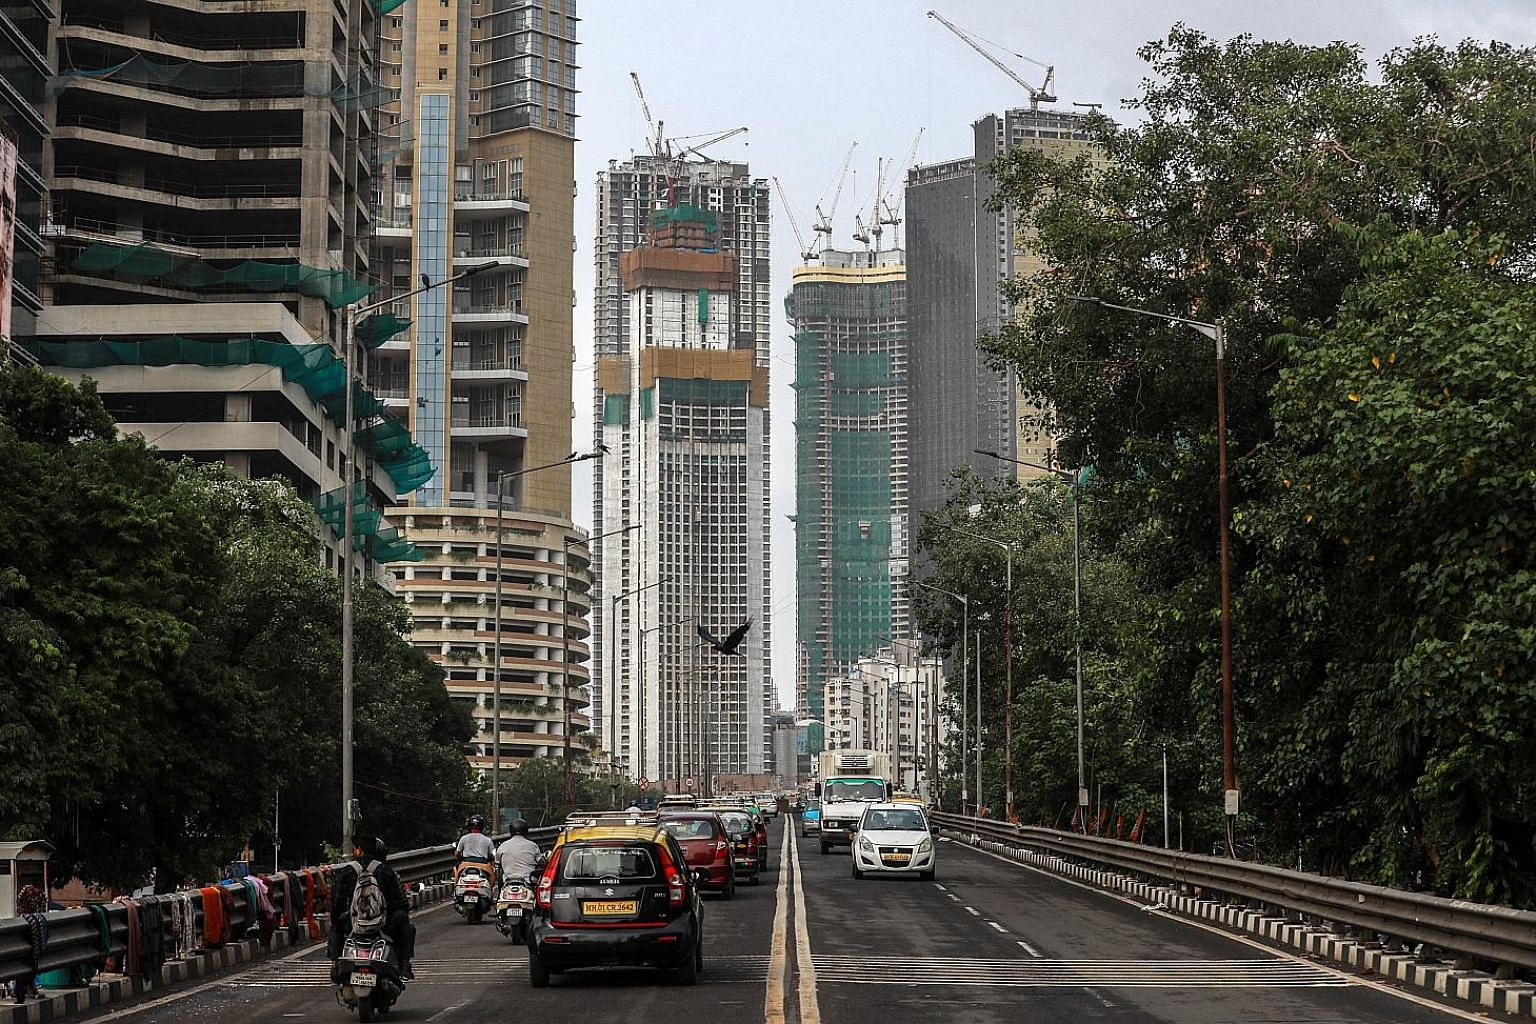 A frenzy of construction has gripped the Indian city of Mumbai over the past decade, but it now faces a glut of expensive housing. Unsold inventory in the city rose 14 per cent in the first half of this year from the same time a year earlier, accordi